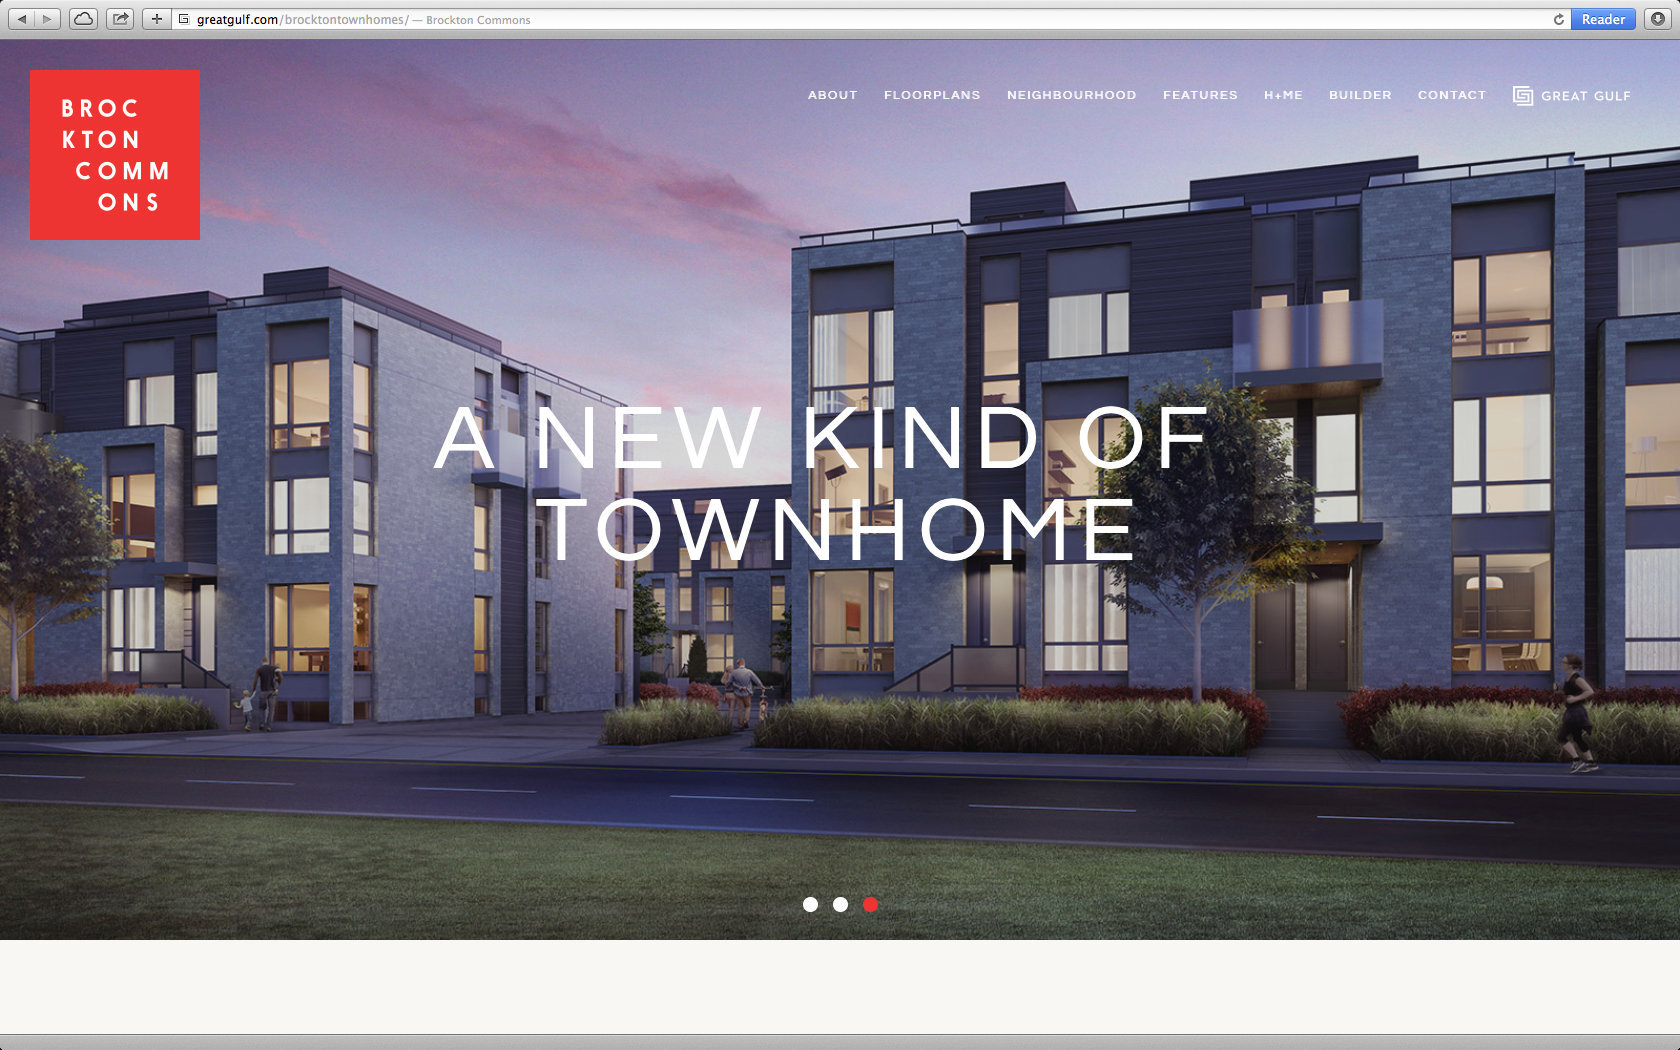 BROCKTON COMMONS TOWNHOMES WEBSITE  3/13